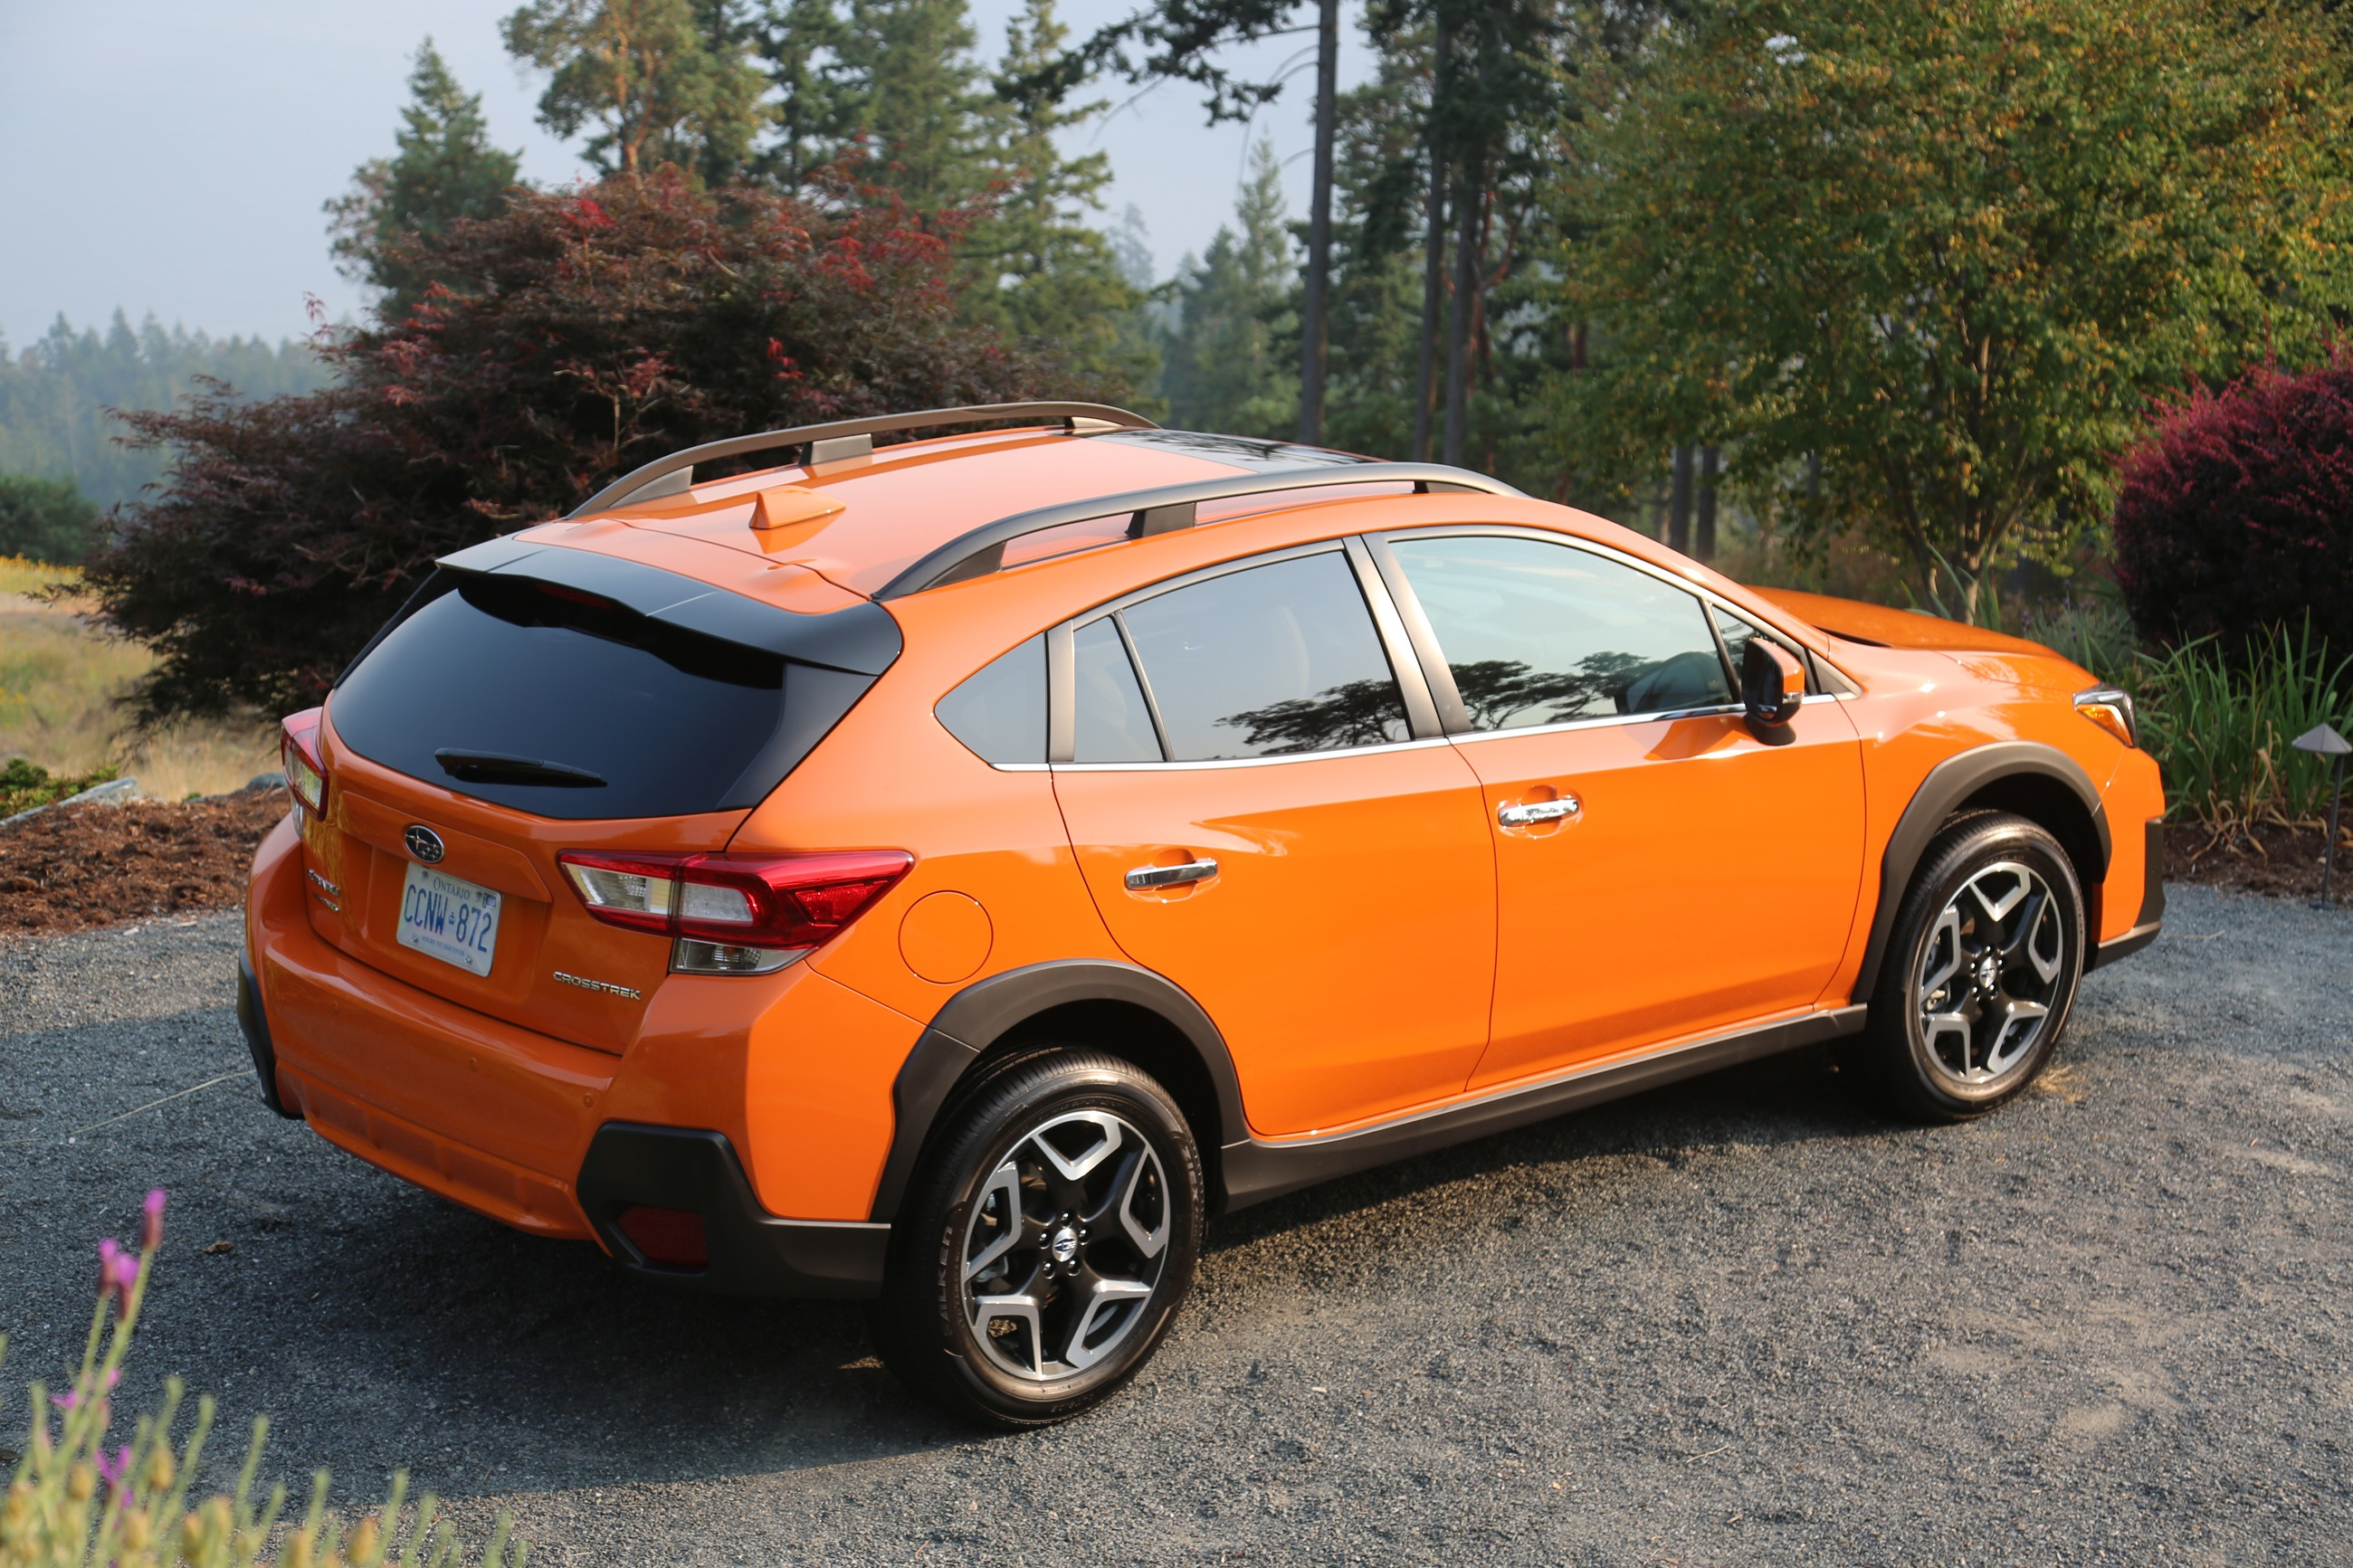 2018 Subaru Crosstrek Review - AutoGuide.com News